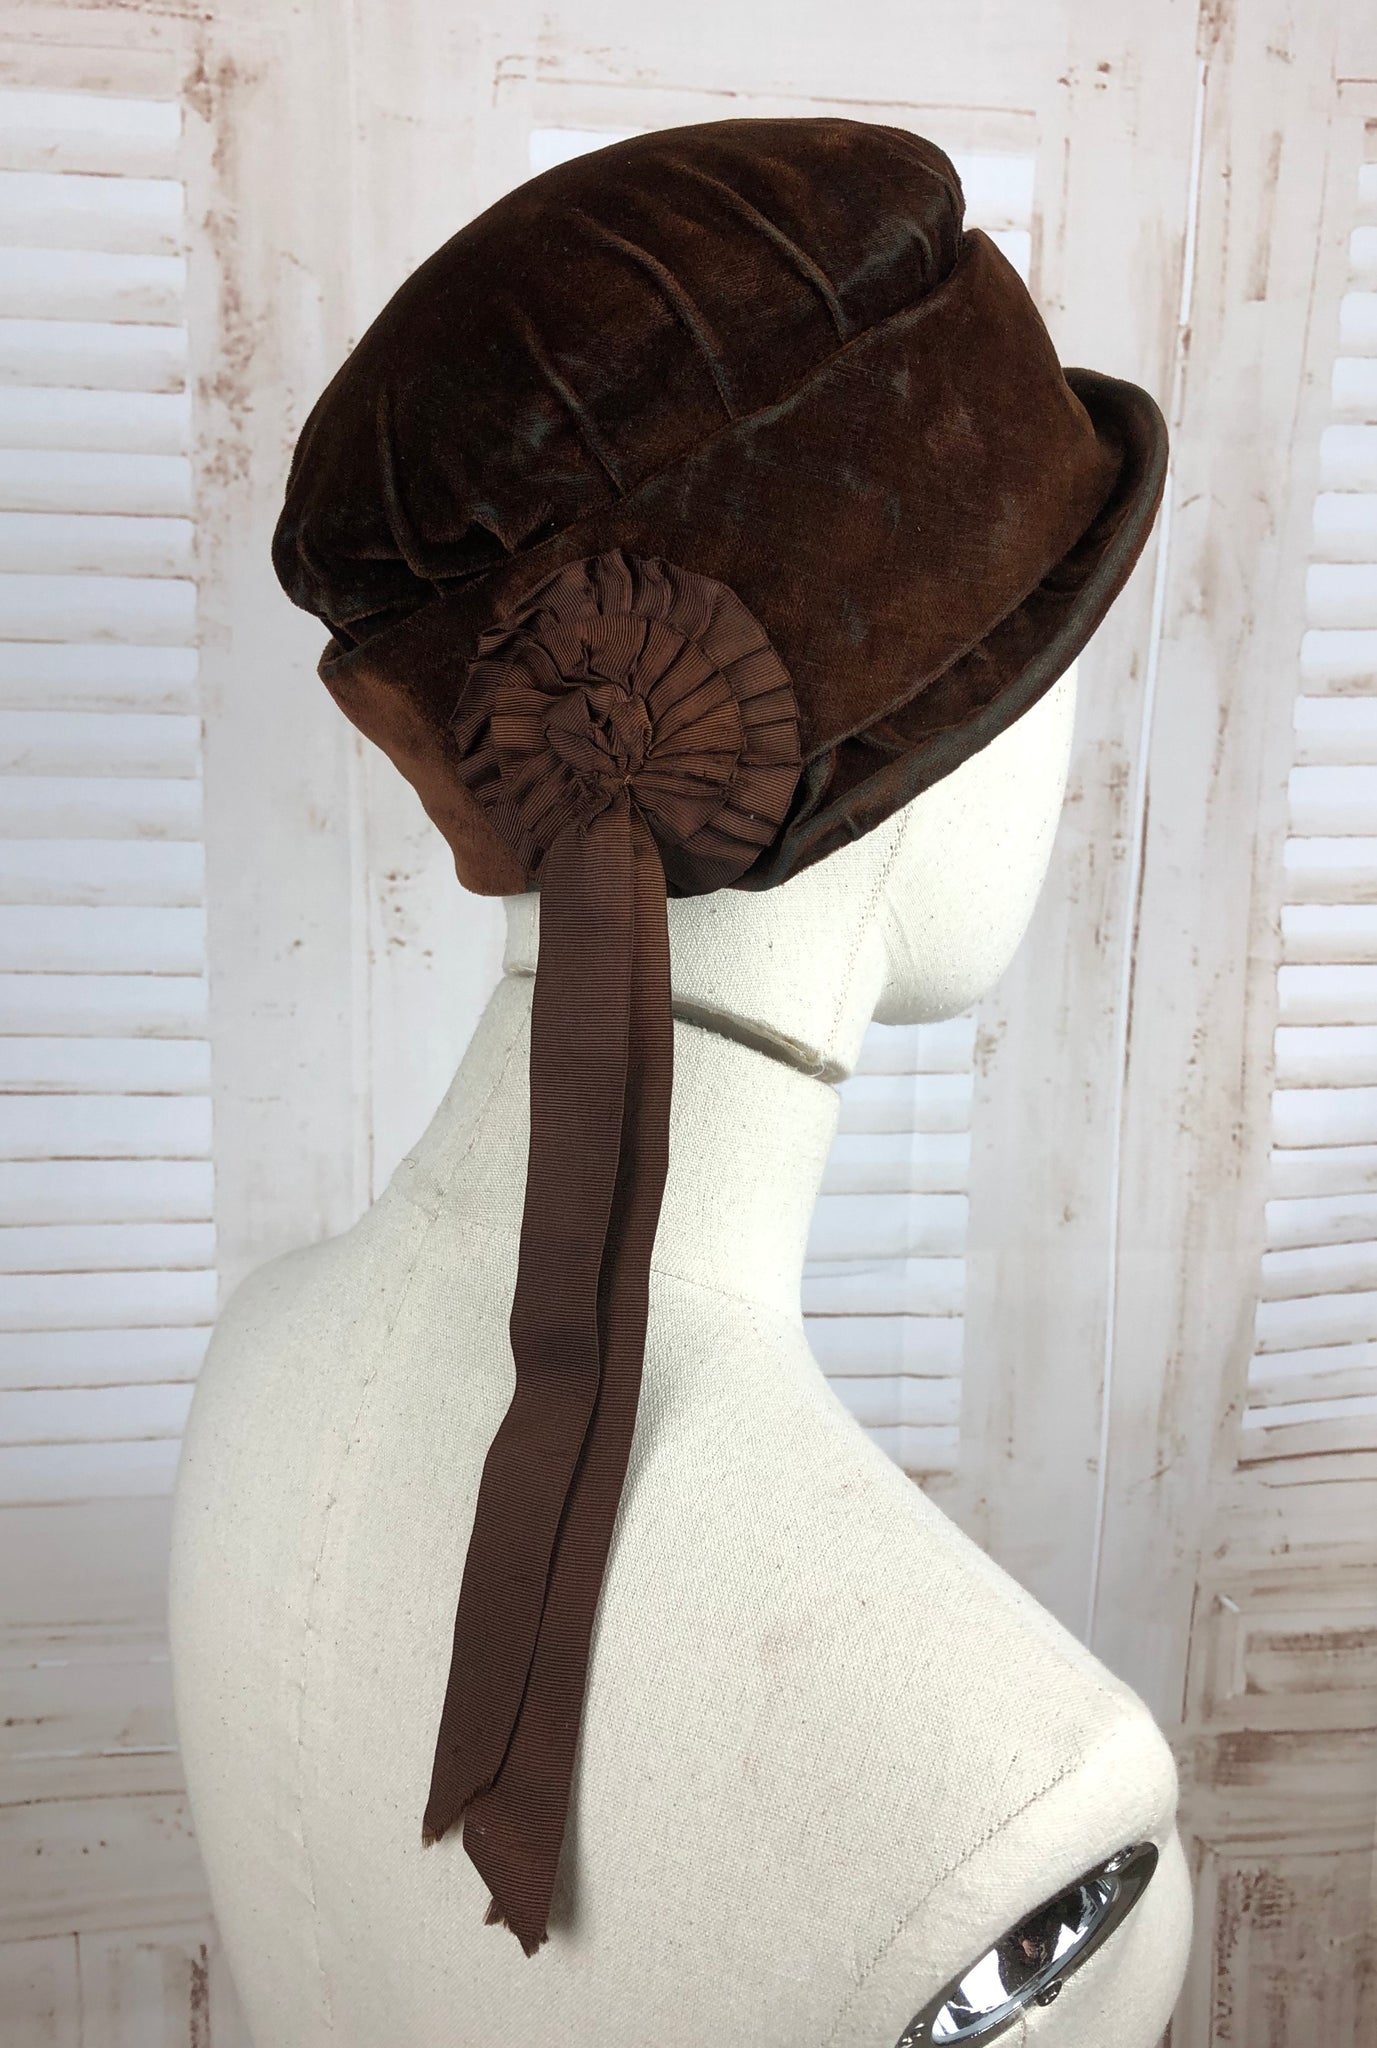 Original 1920s 20s Vintage Flapper Brown Velvet Cloche Hat With Rosette Decoration